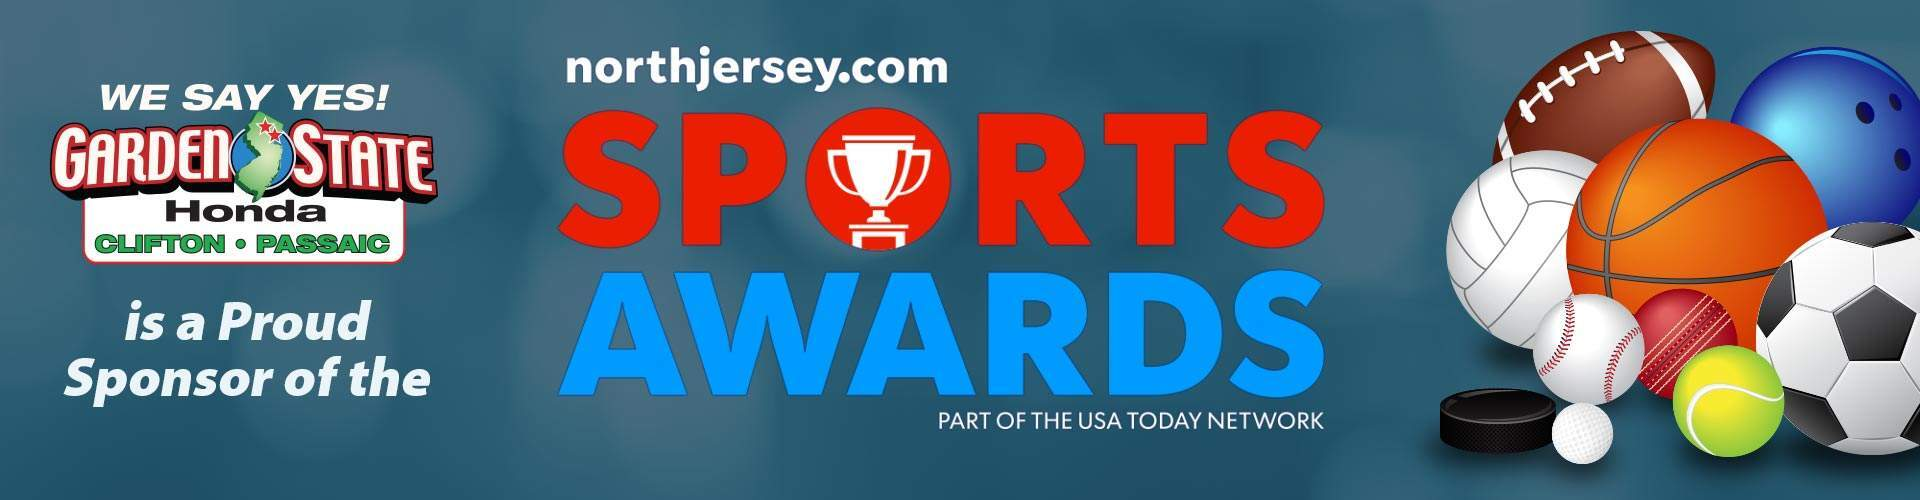 Northjersey.com Sports Award